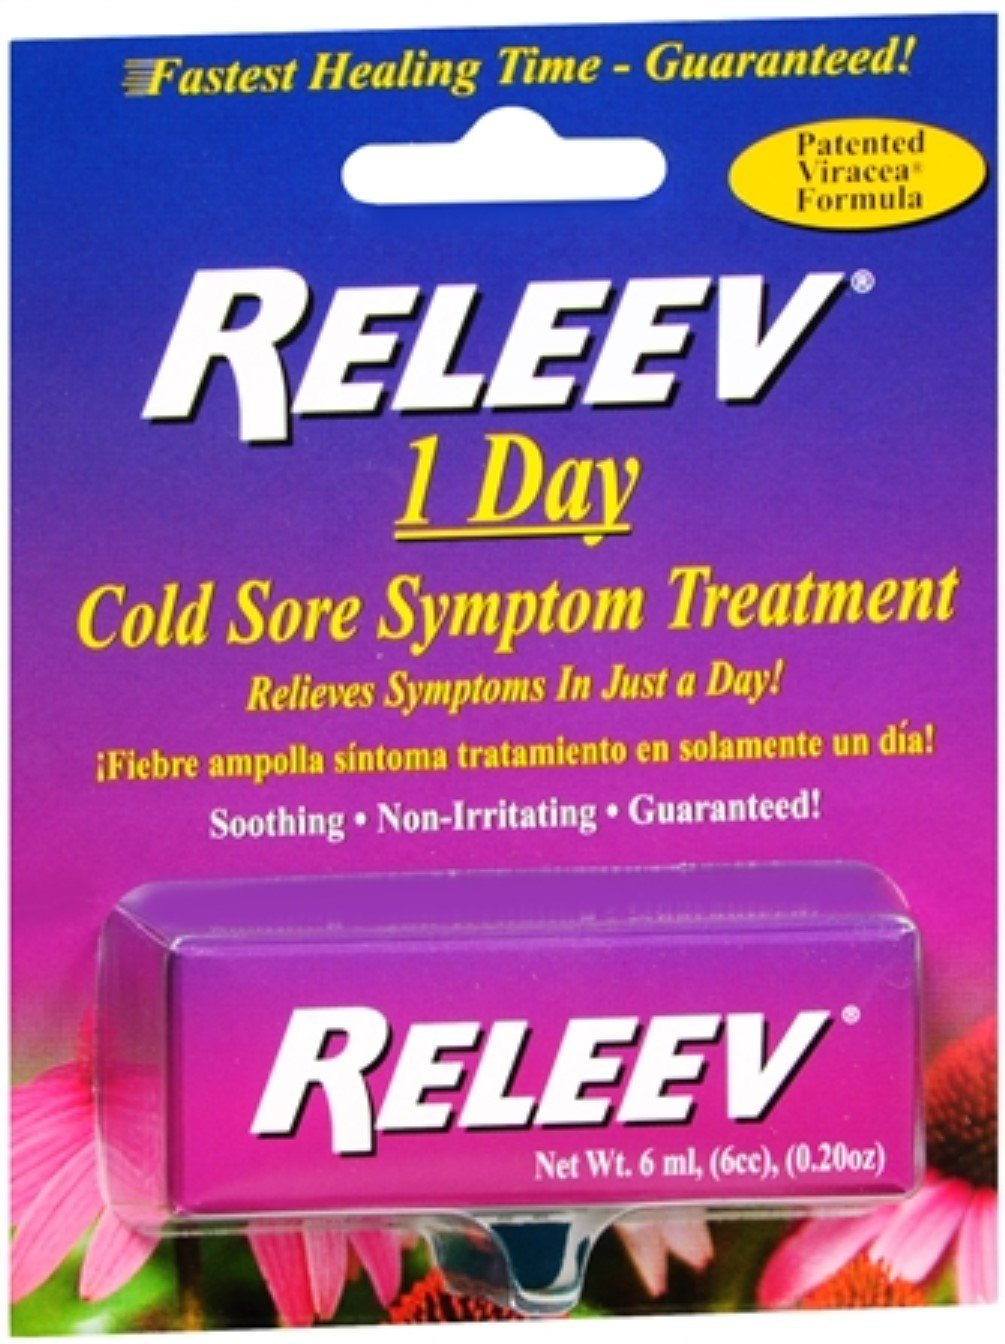 RELEEV 1 Day Cold Sore Treatment 6 mL (Pack of 6) by Releev